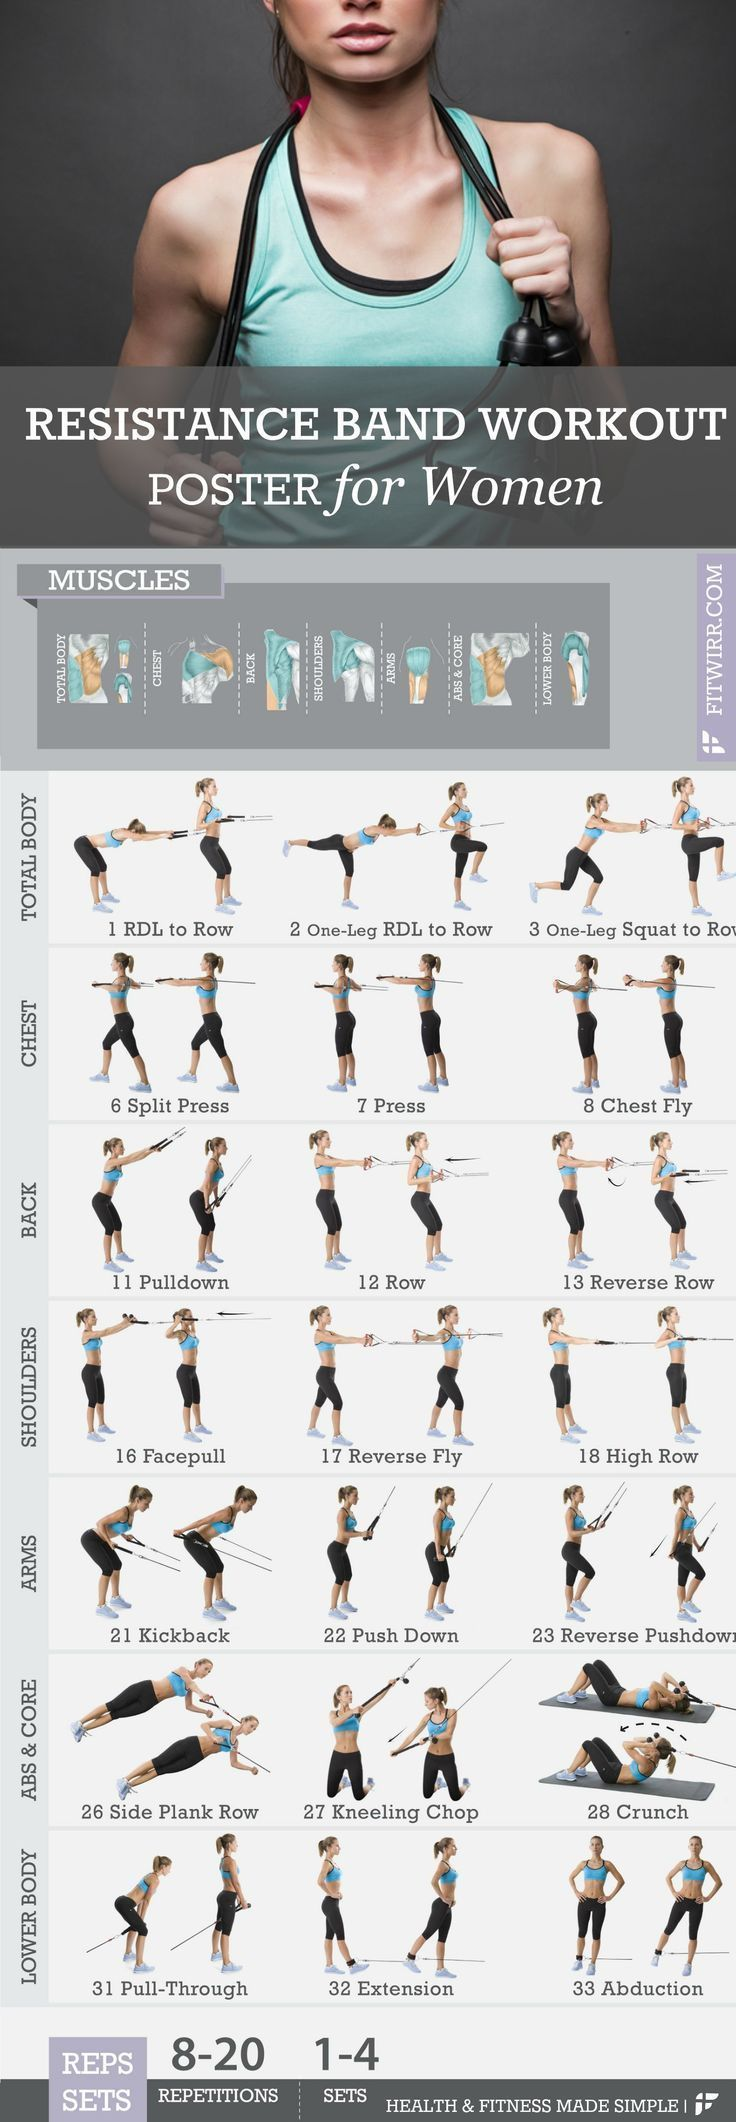 exercise 6 physioex 8 0 Need a little help on physioex 90, exercises 8, chemical and physical  processes  isbn-13: 978-0-321-81557-6 or isbn-10 0-321-81557-2.